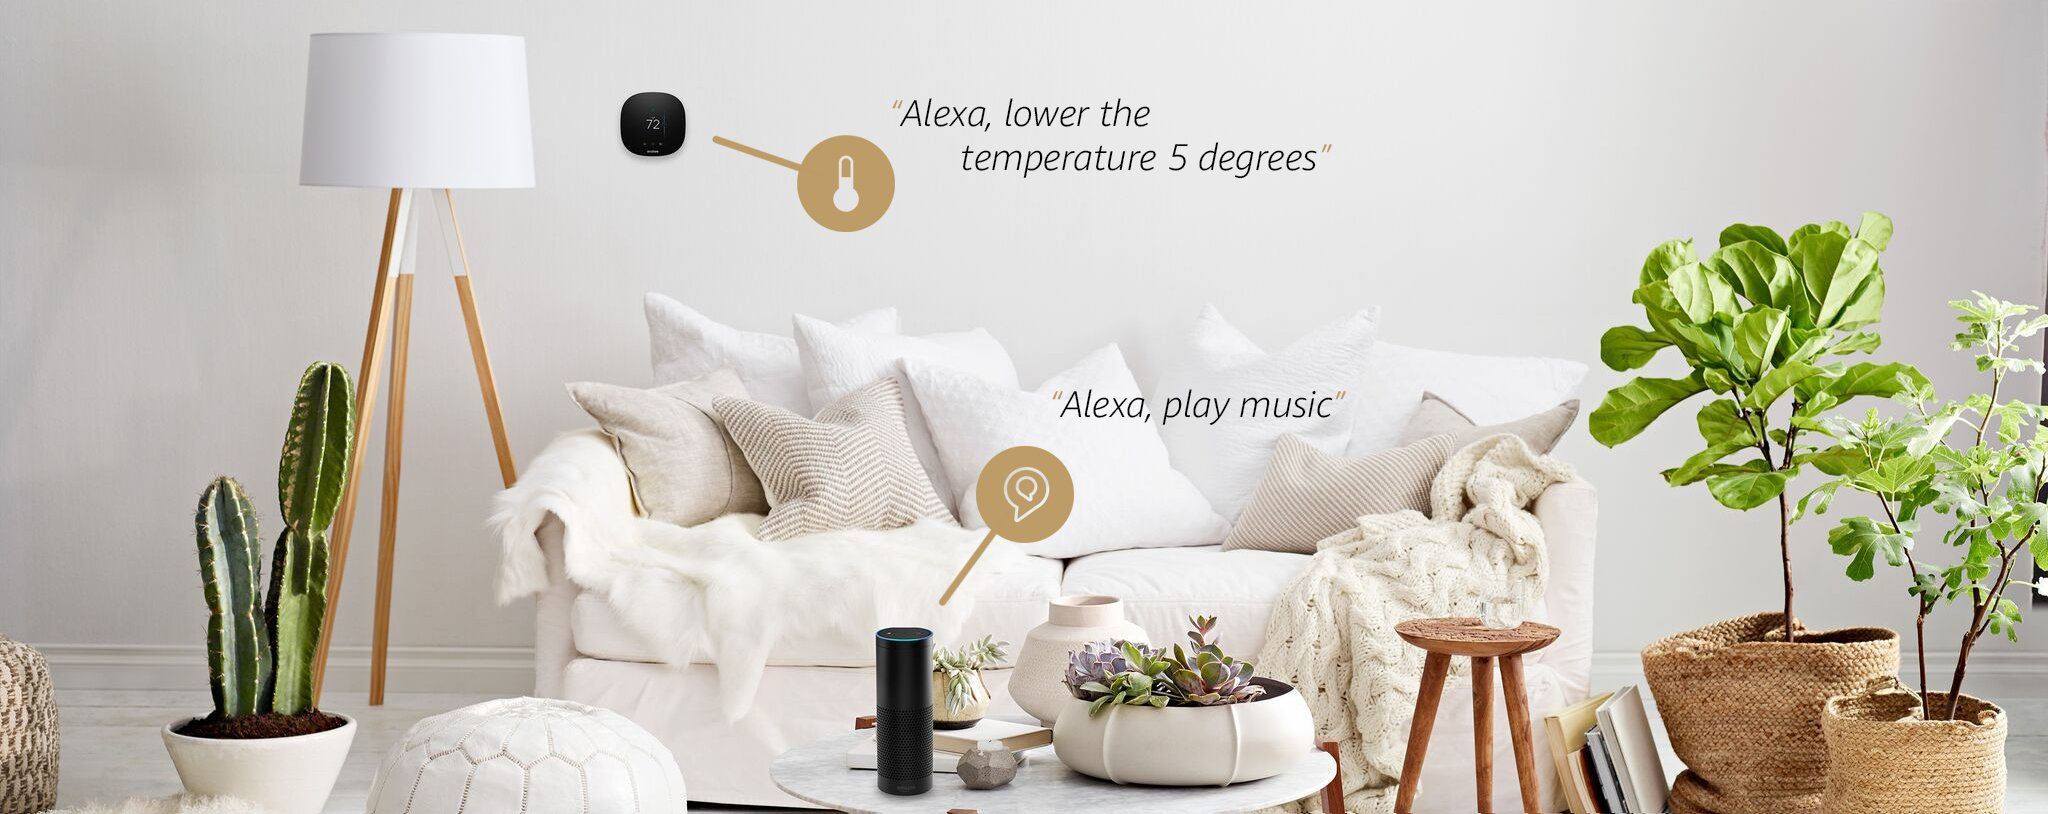 amazon smart home services. Black Bedroom Furniture Sets. Home Design Ideas